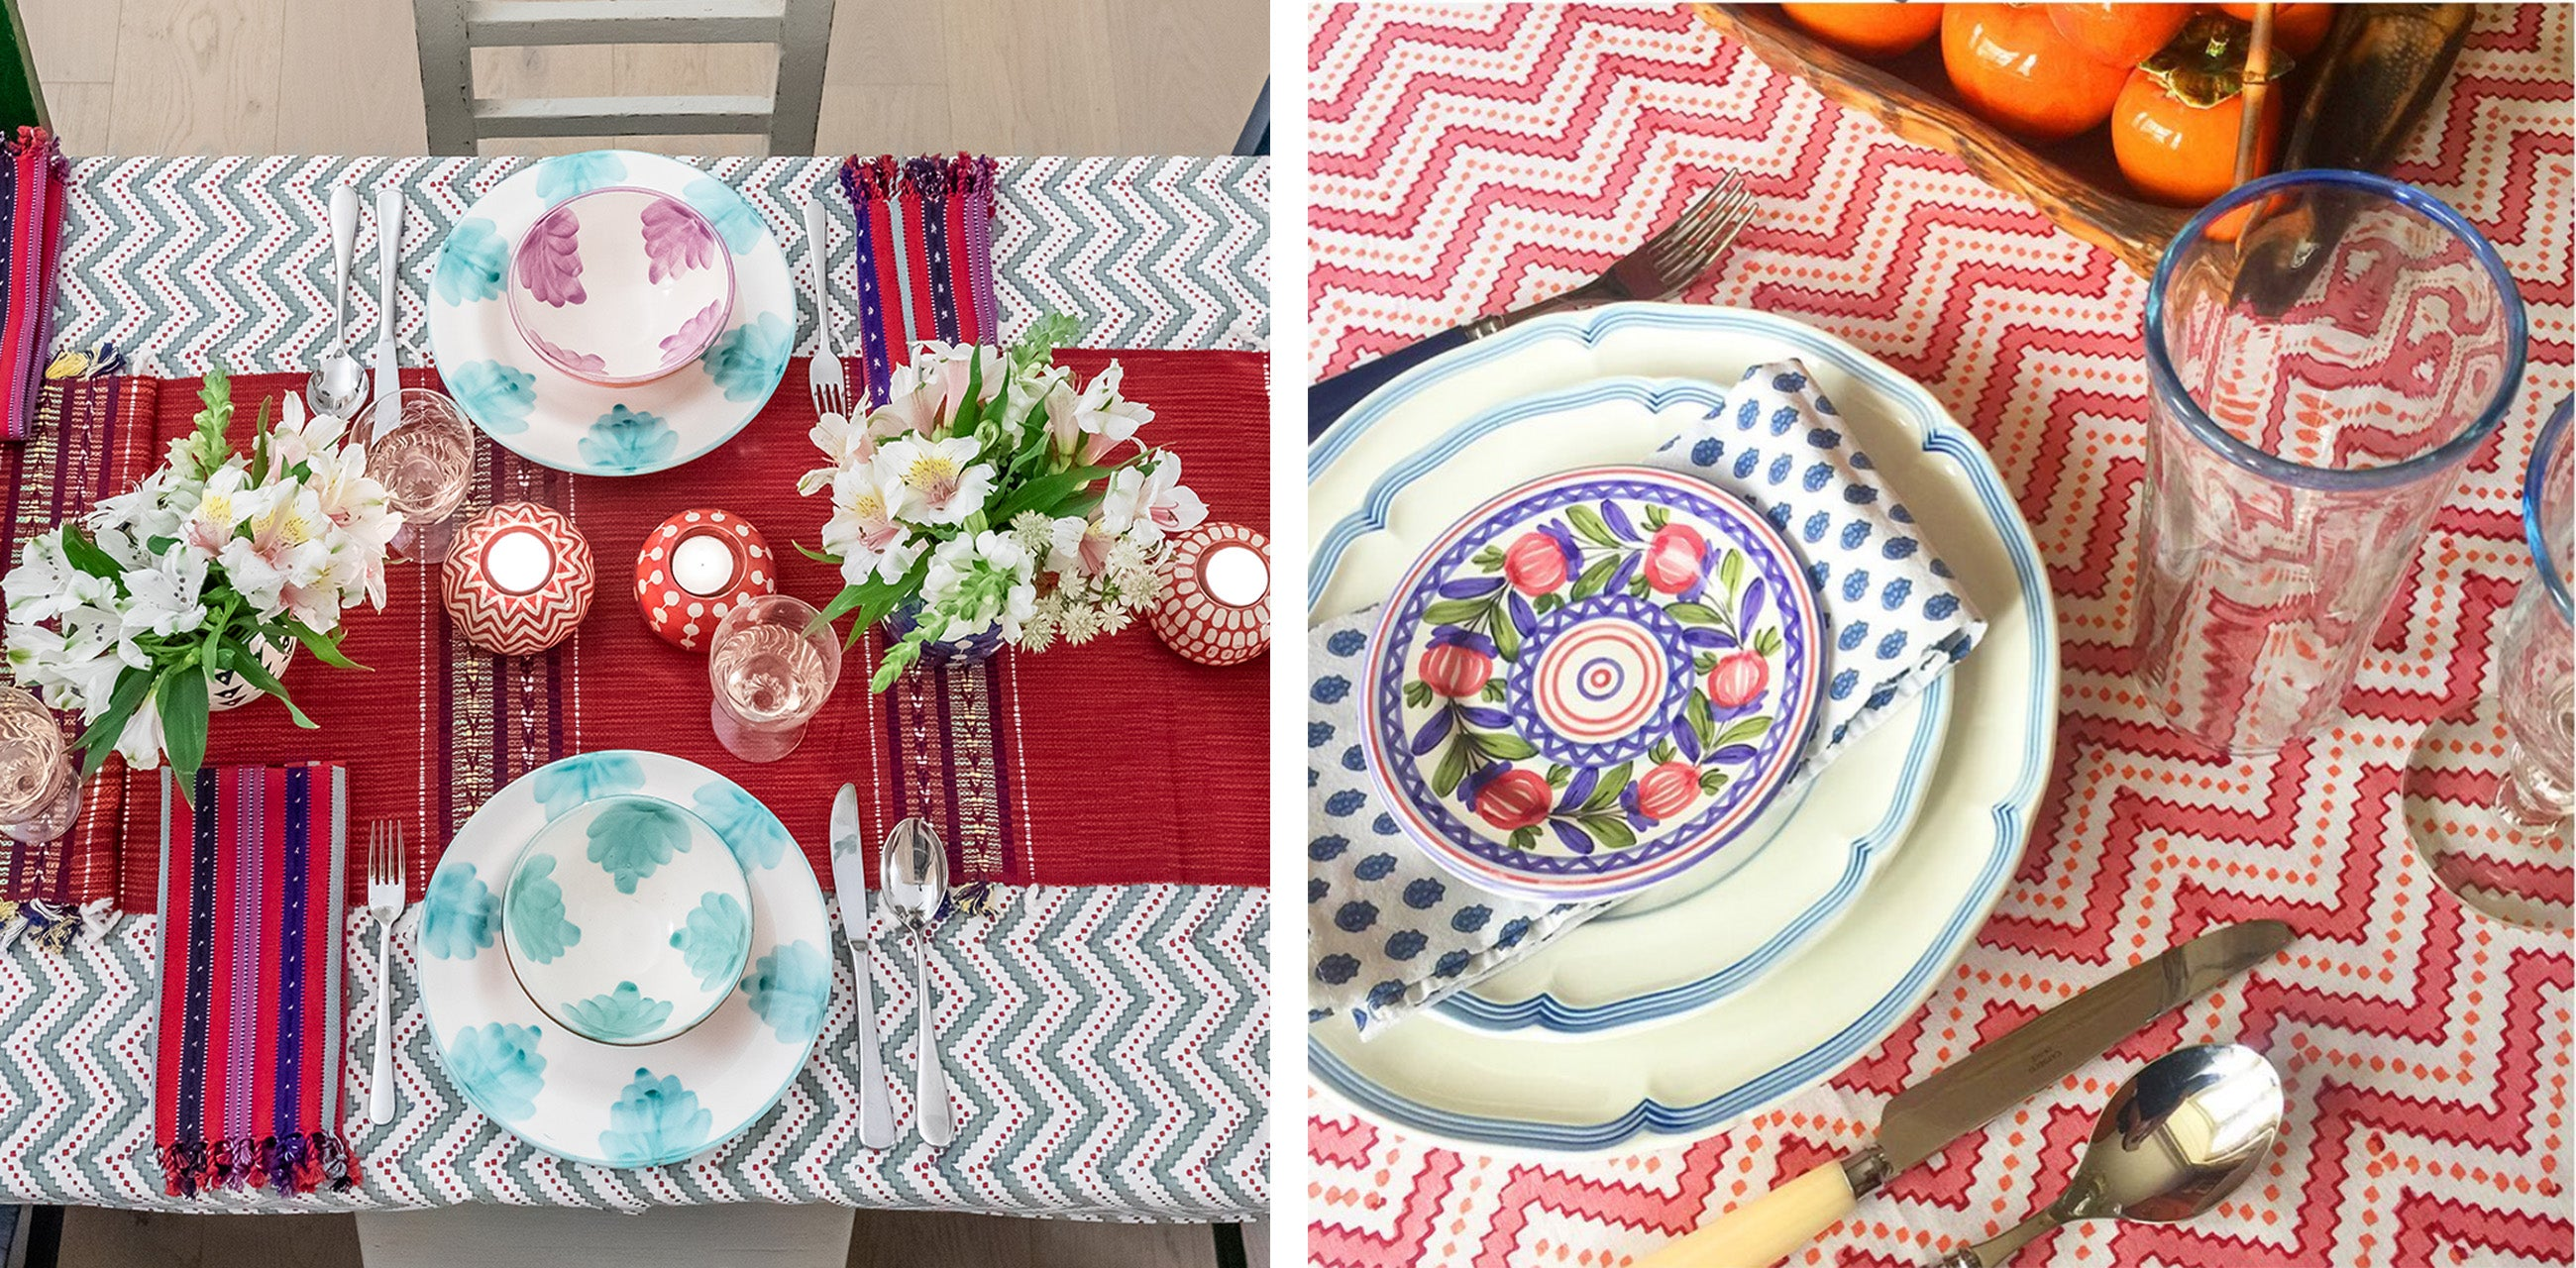 Wicklewood's Valentine's Day Table Laying Tips - how to add colour and pattern to your table top